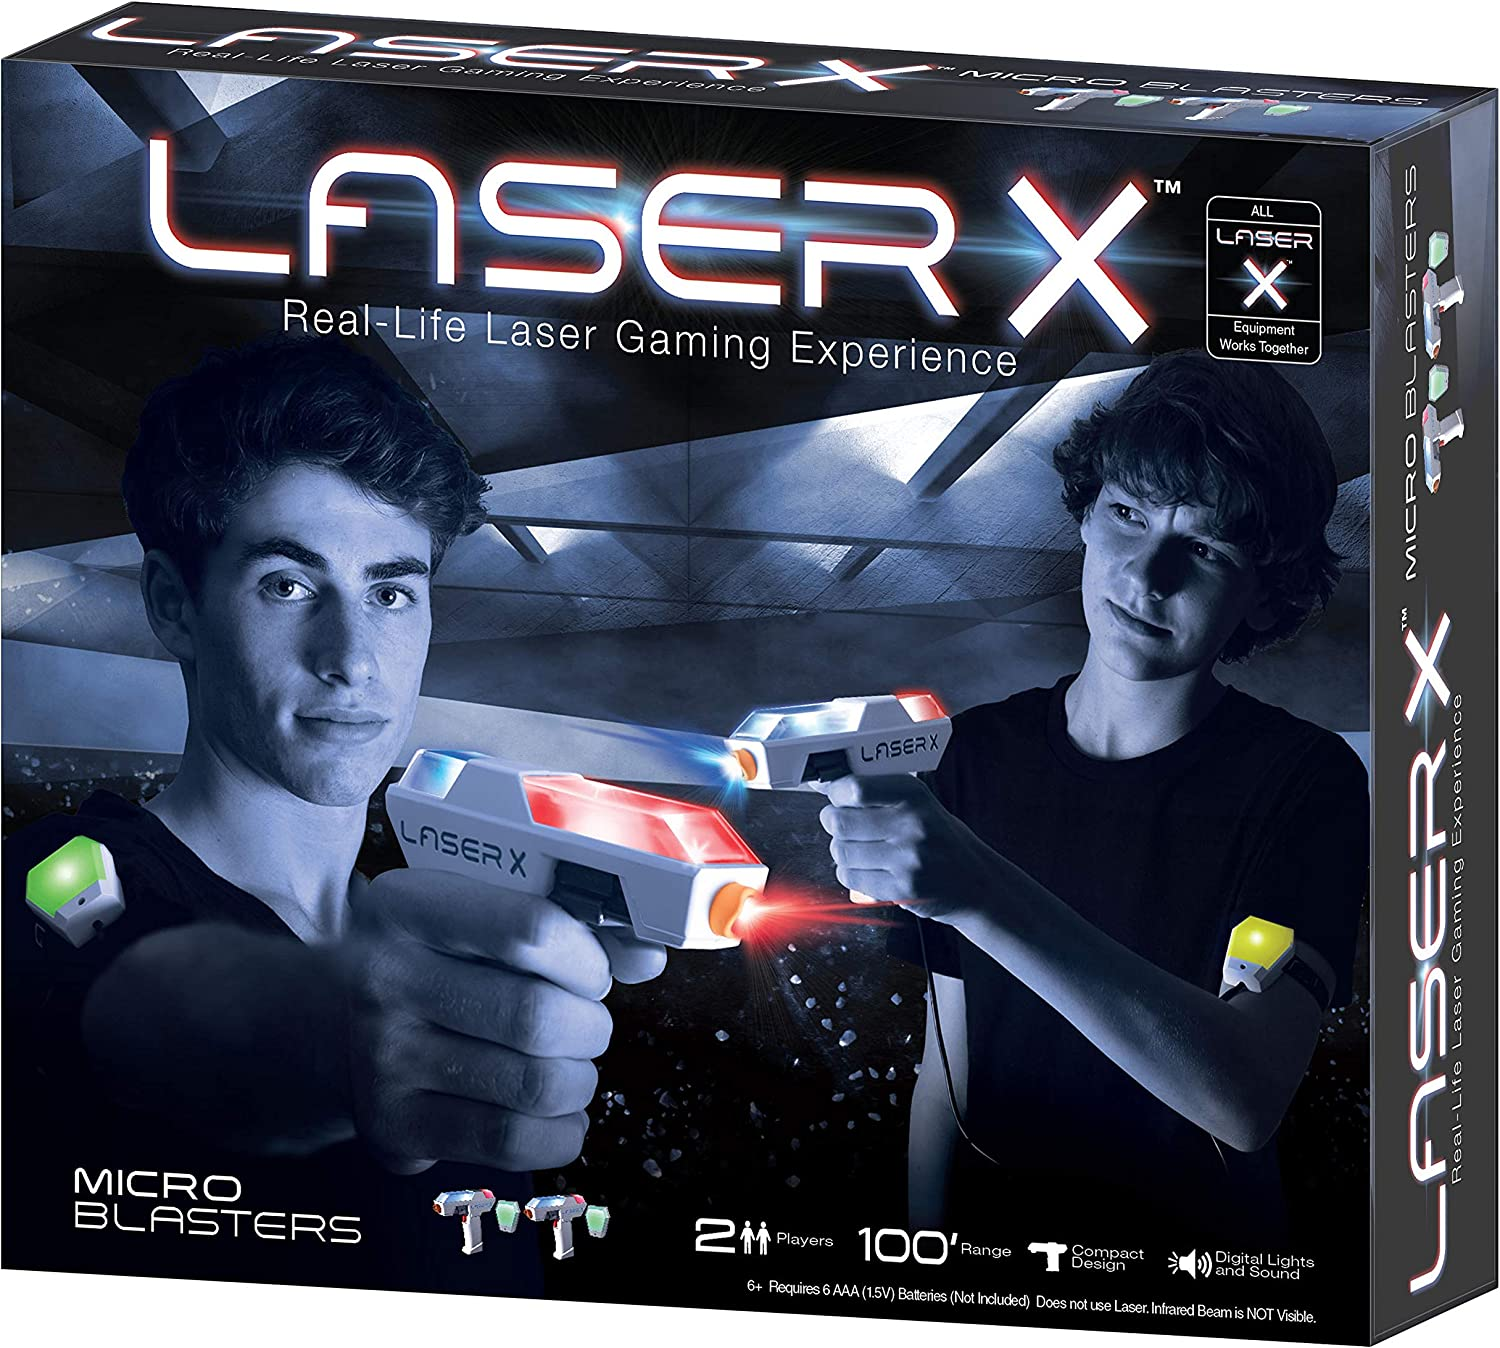 Beluga Toys 79005聽Blasters Laser Micro Double Pack White